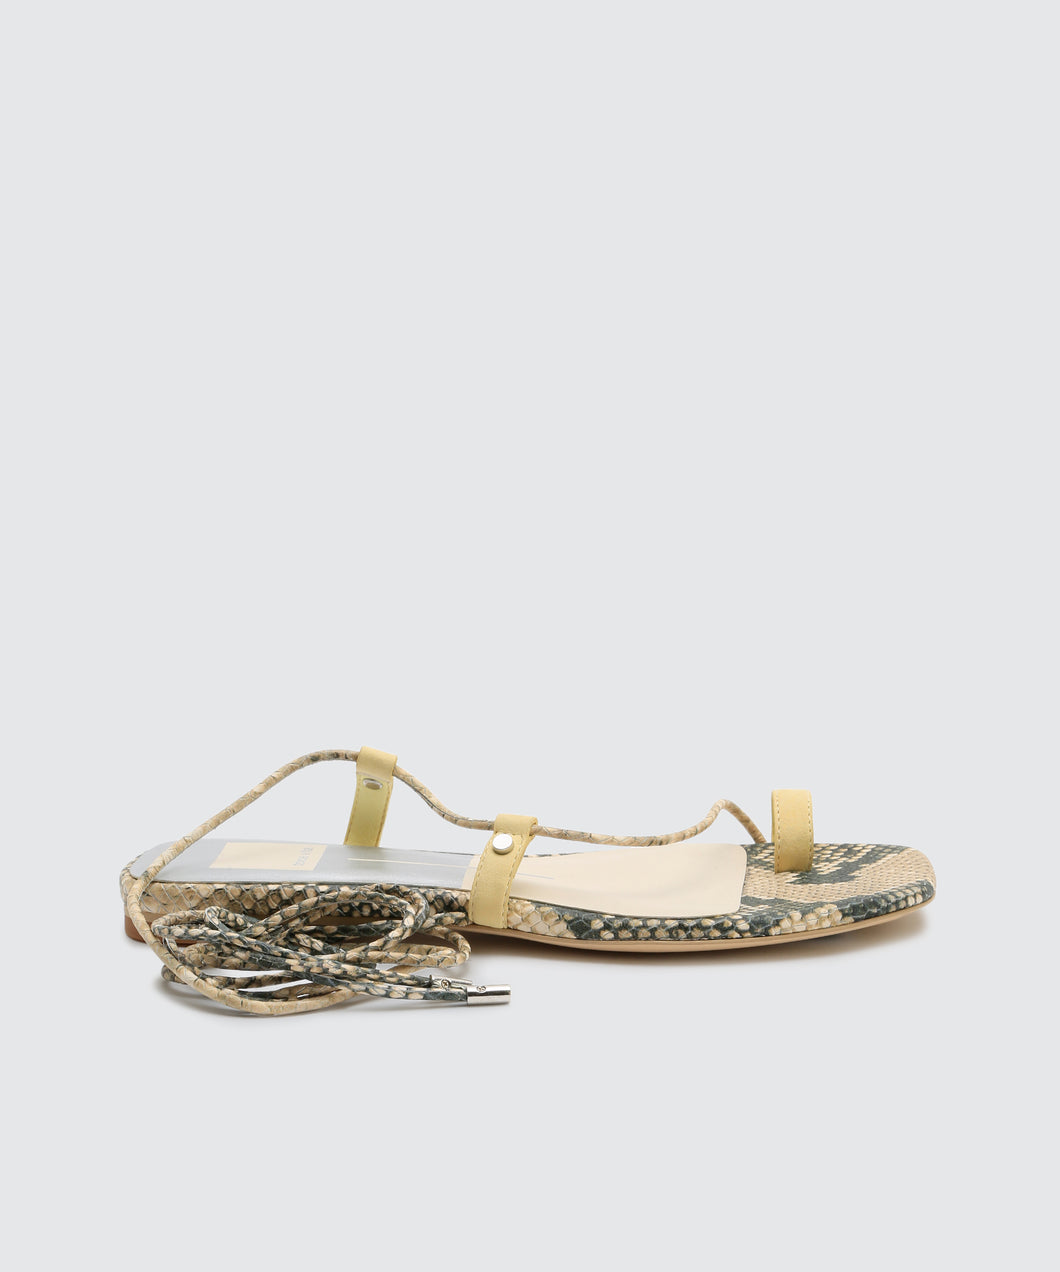 DASH SANDALS LEMON -   Dolce Vita